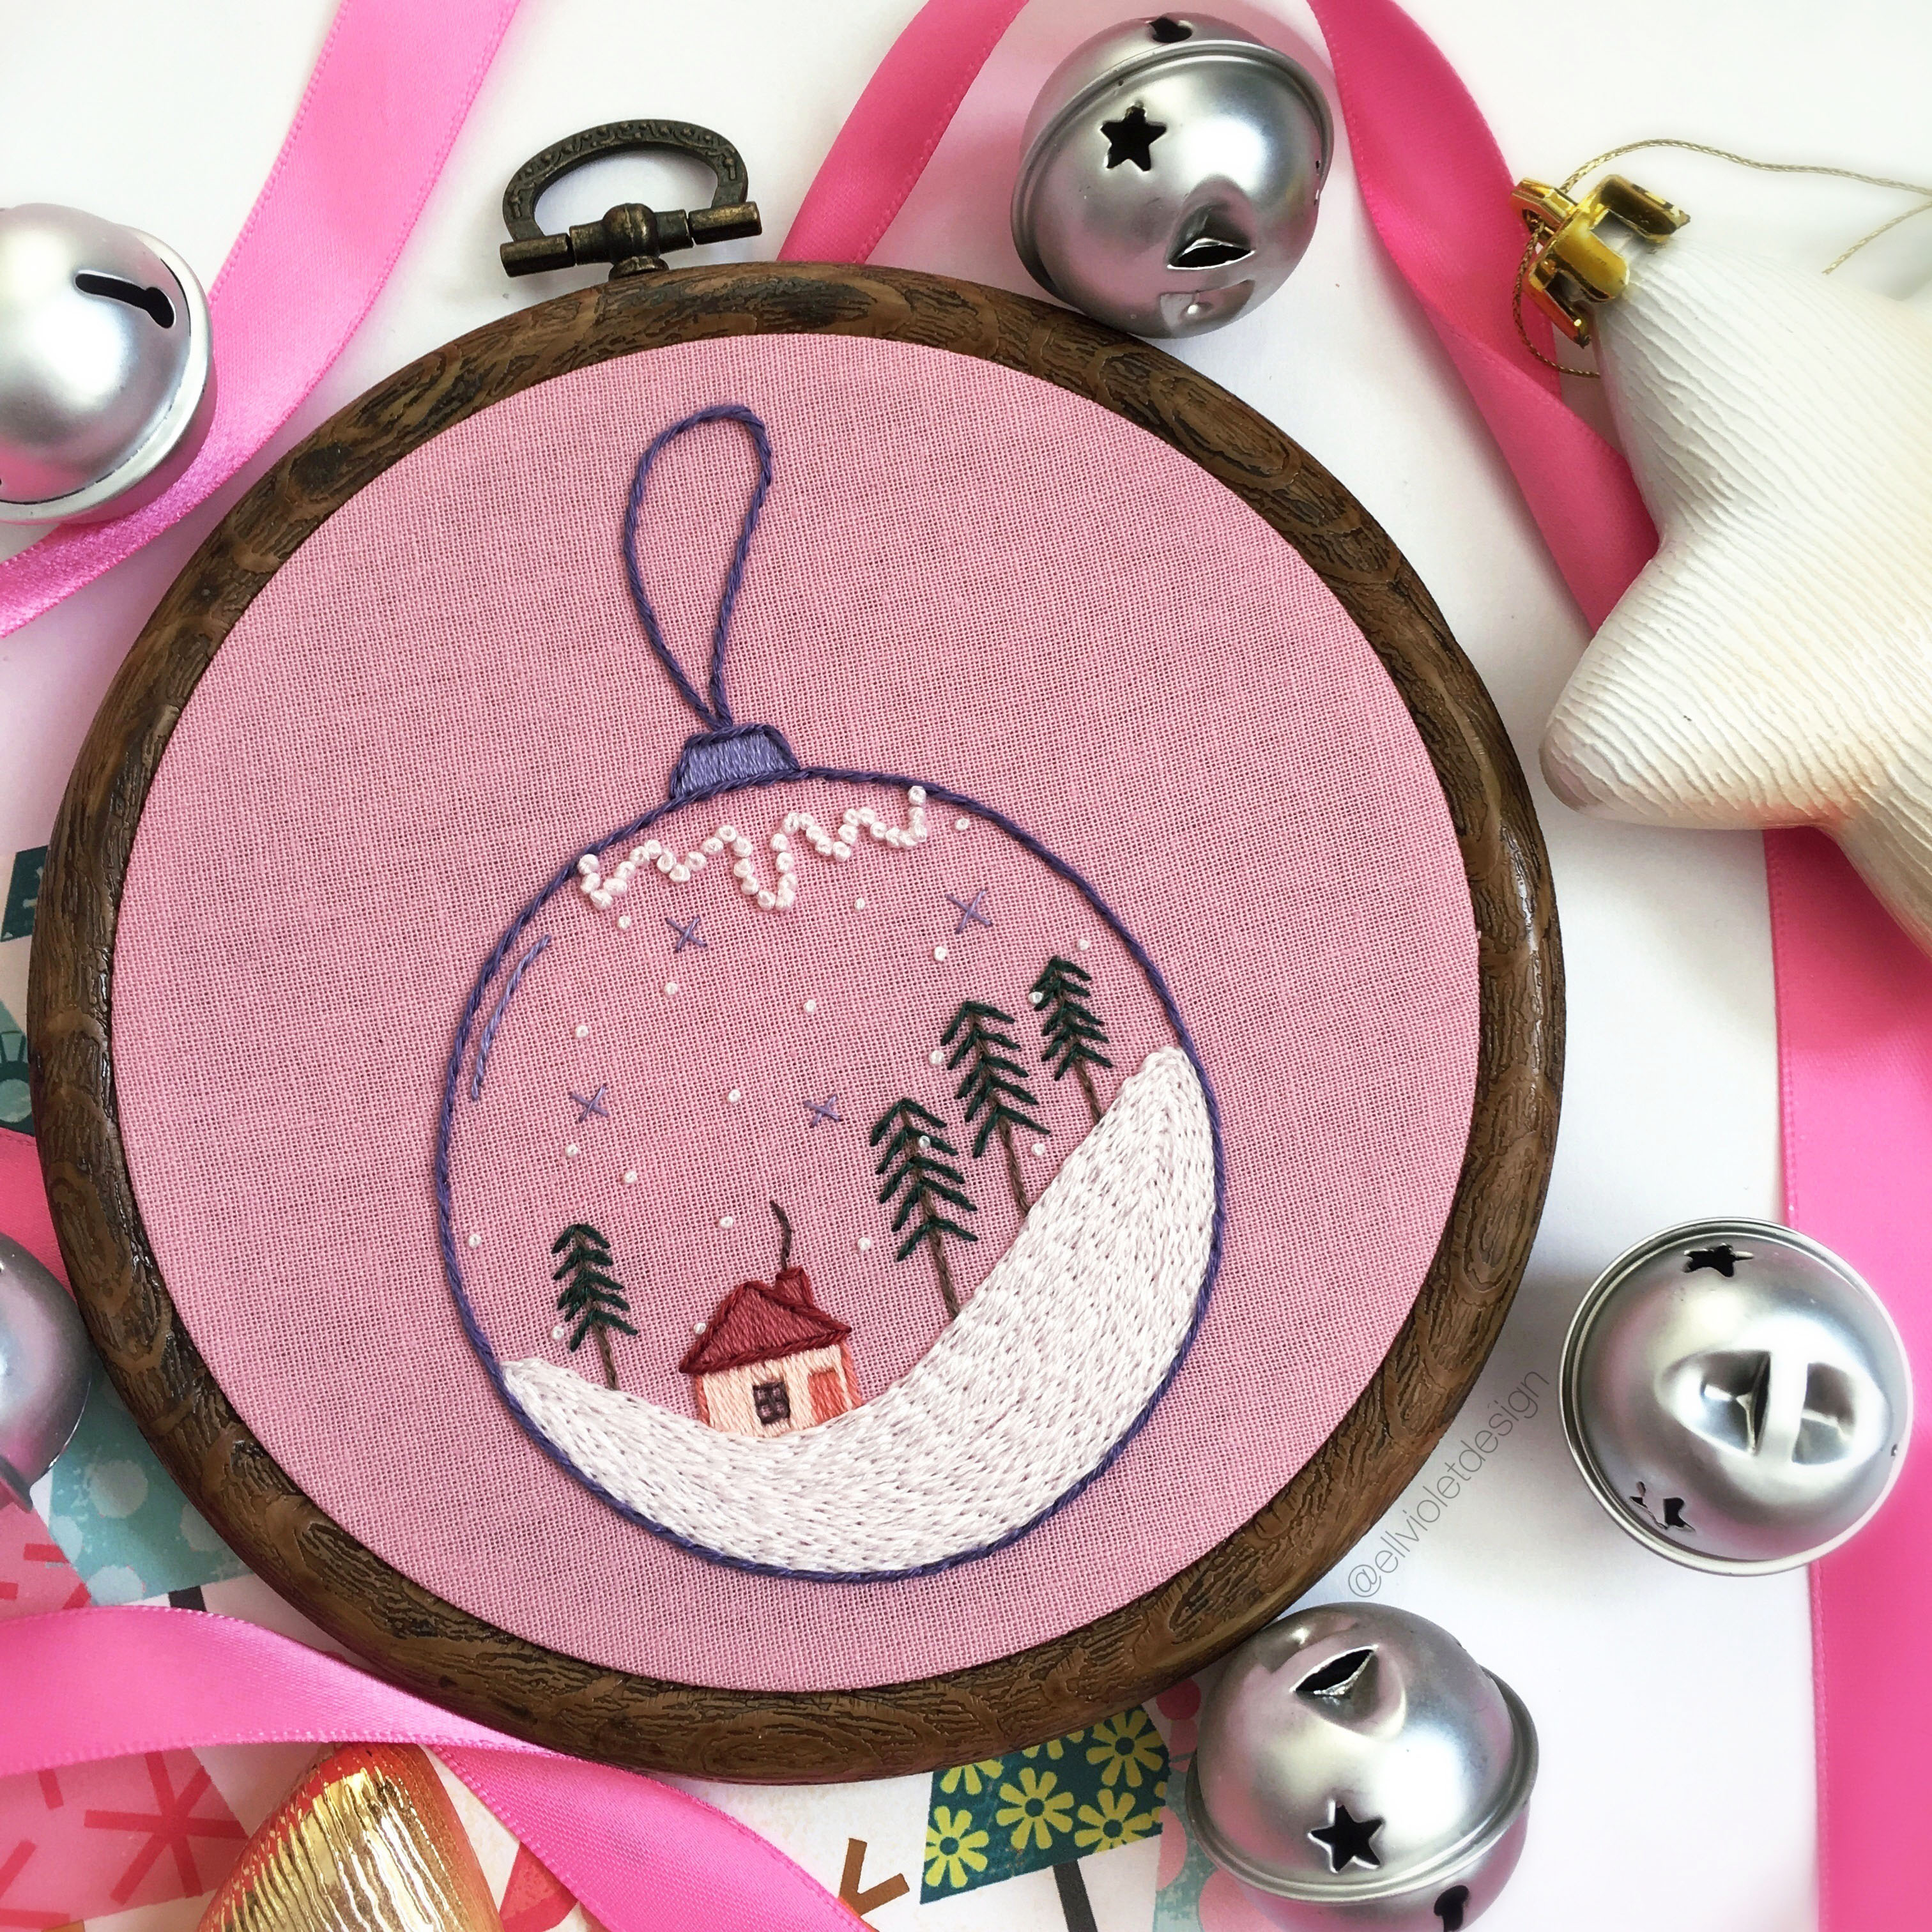 Hand Embroidery Christmas Patterns Pastel Christmas Bauble Ornament Hand Embroidery Pattern